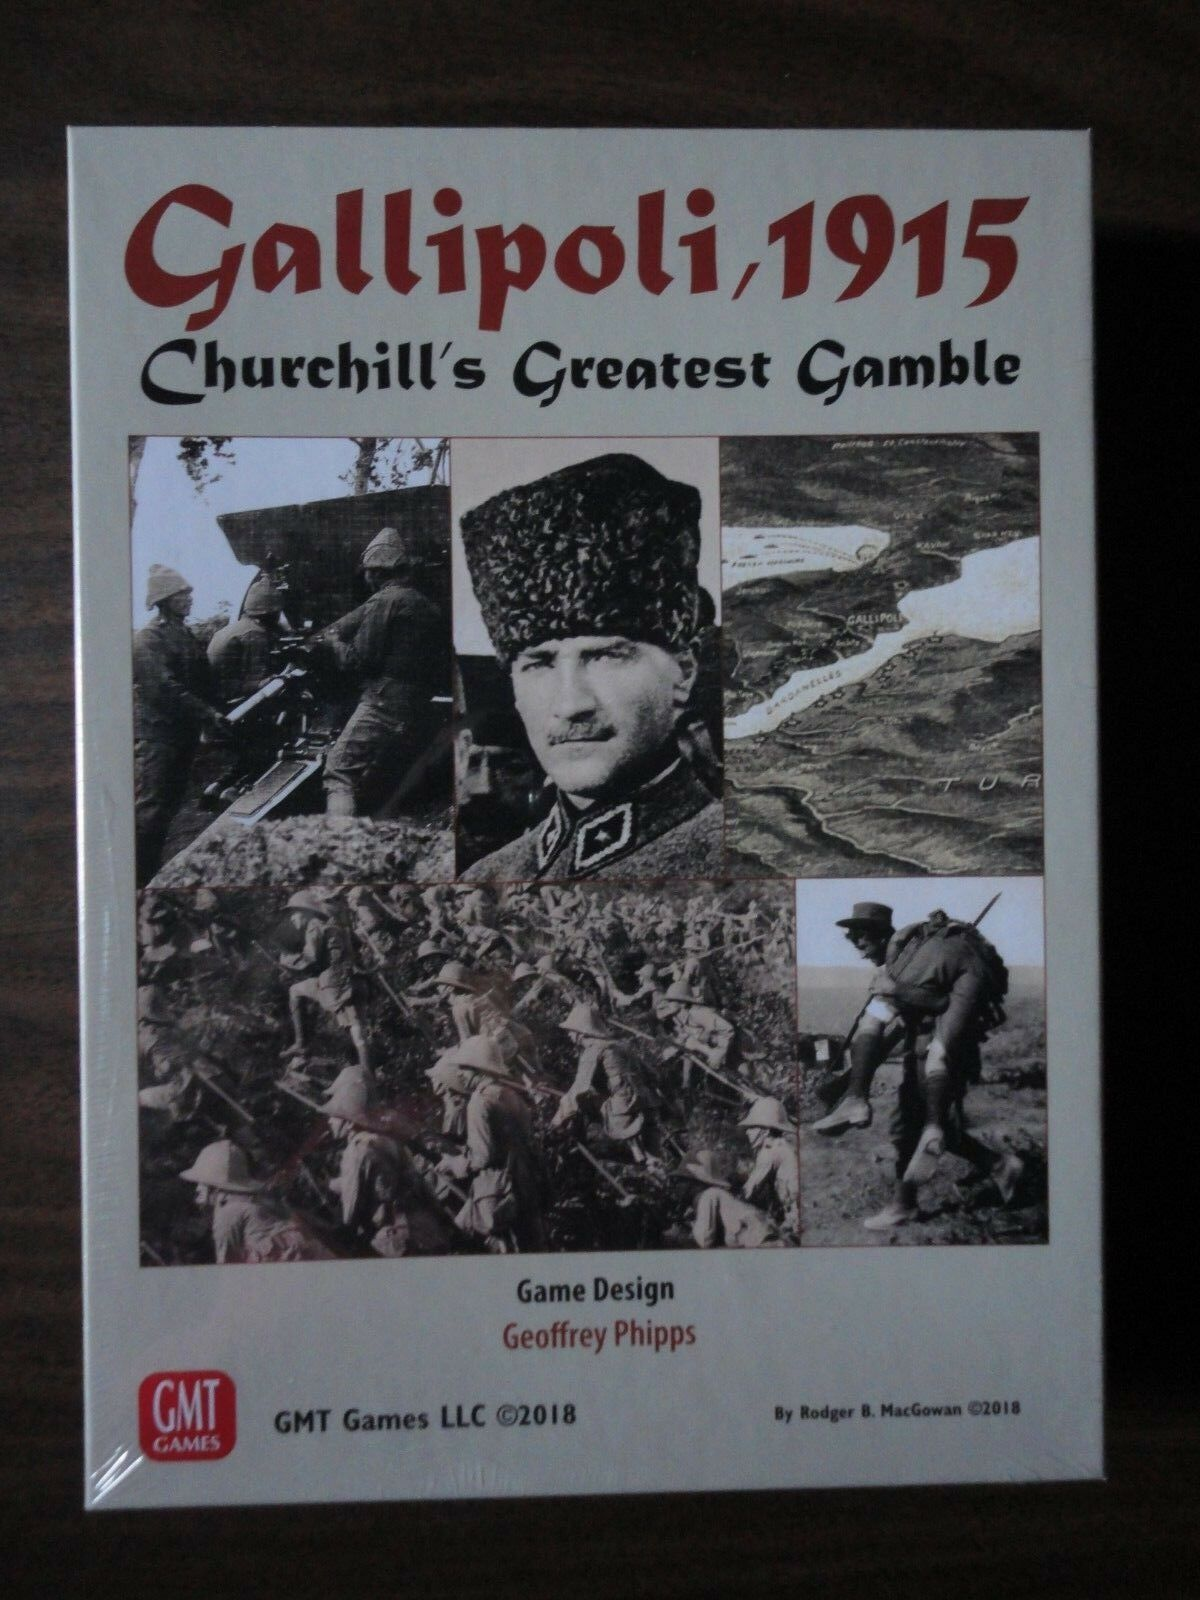 Gallipoli, 1915 by GMT Games NEW 2018 mint in shrink